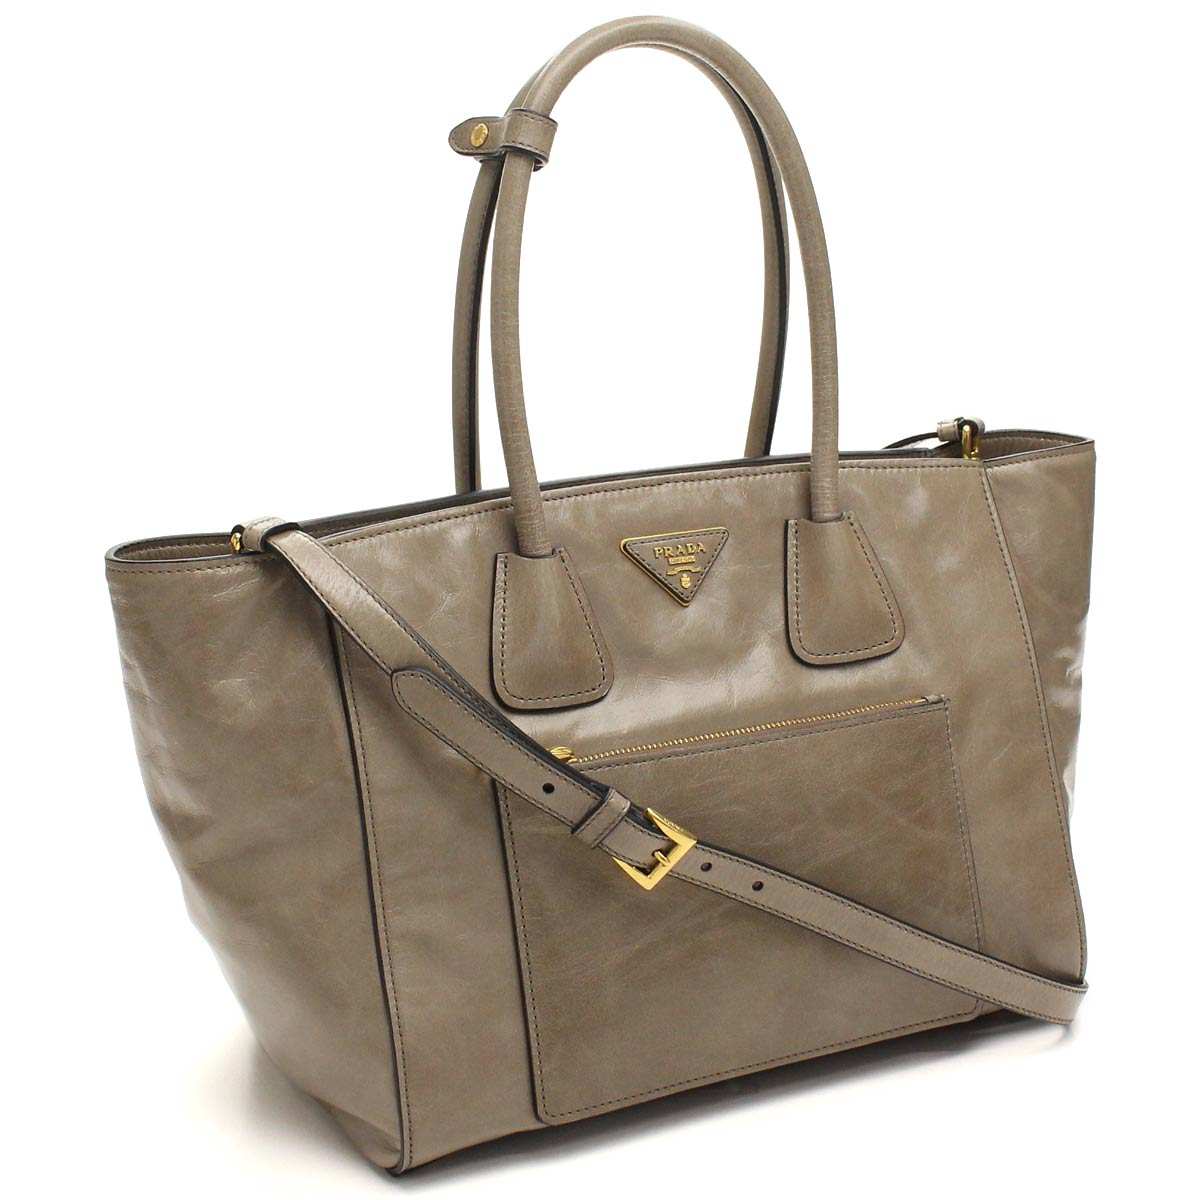 8fc300ad5417 Bighit The total brand wholesale  Prada outlet PRADA (OUTLET) tote bag  F096H BN2795 O 2AL3 GIUNCO beige( taxfree send by EMS authentic A brand new  item ) ...